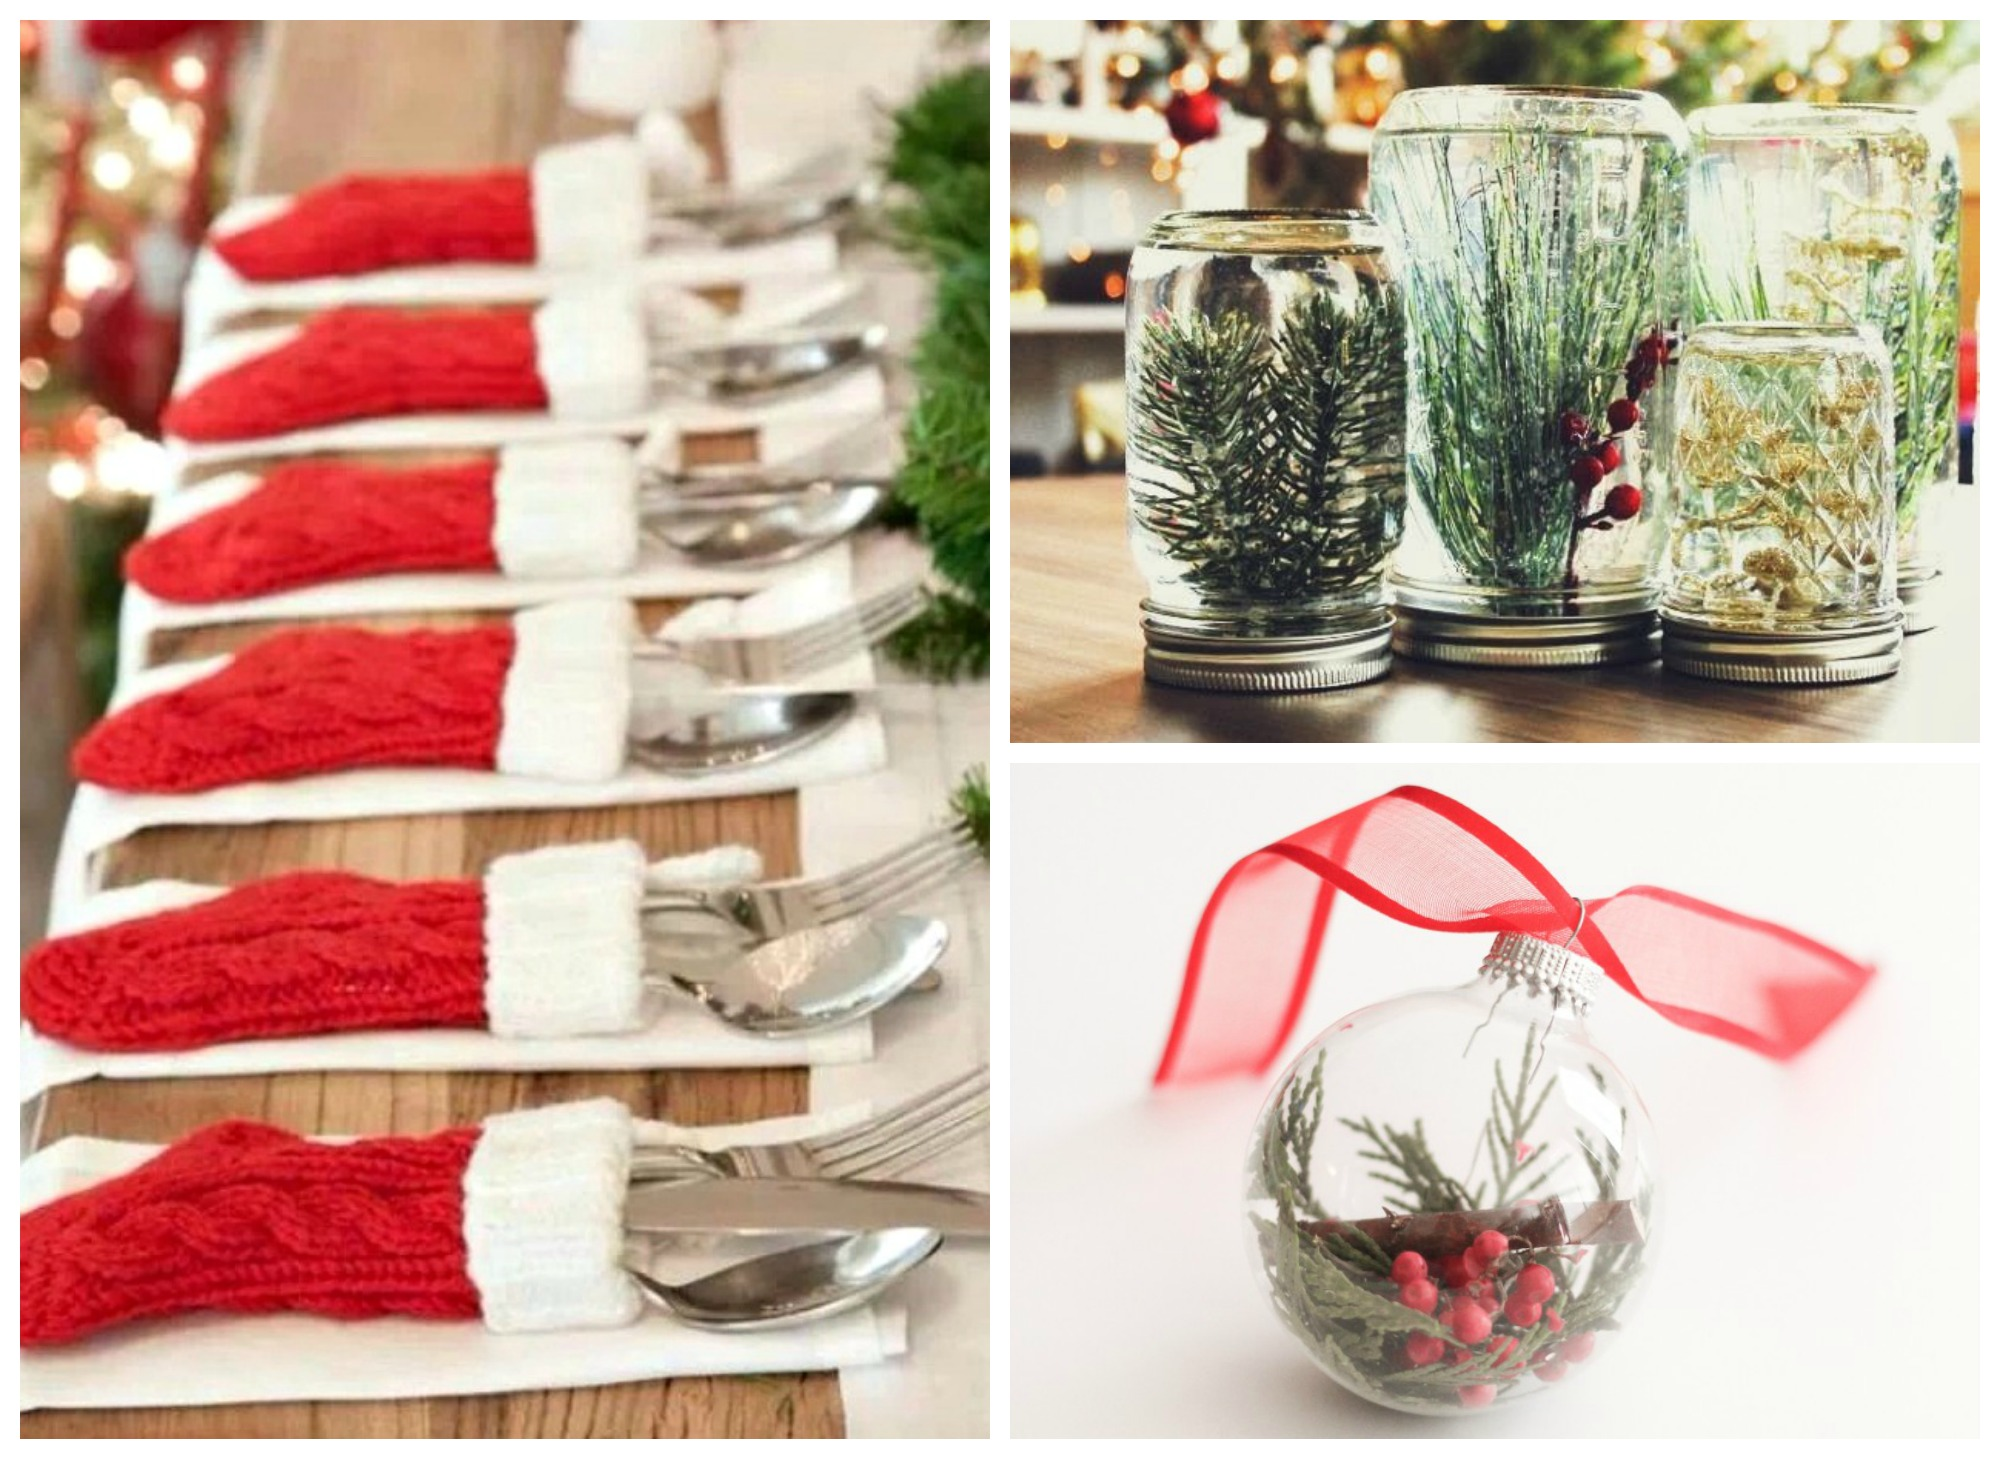 10 dollar store diy christmas decorations that are beyond easy - Christmas Decorations On The Cheap